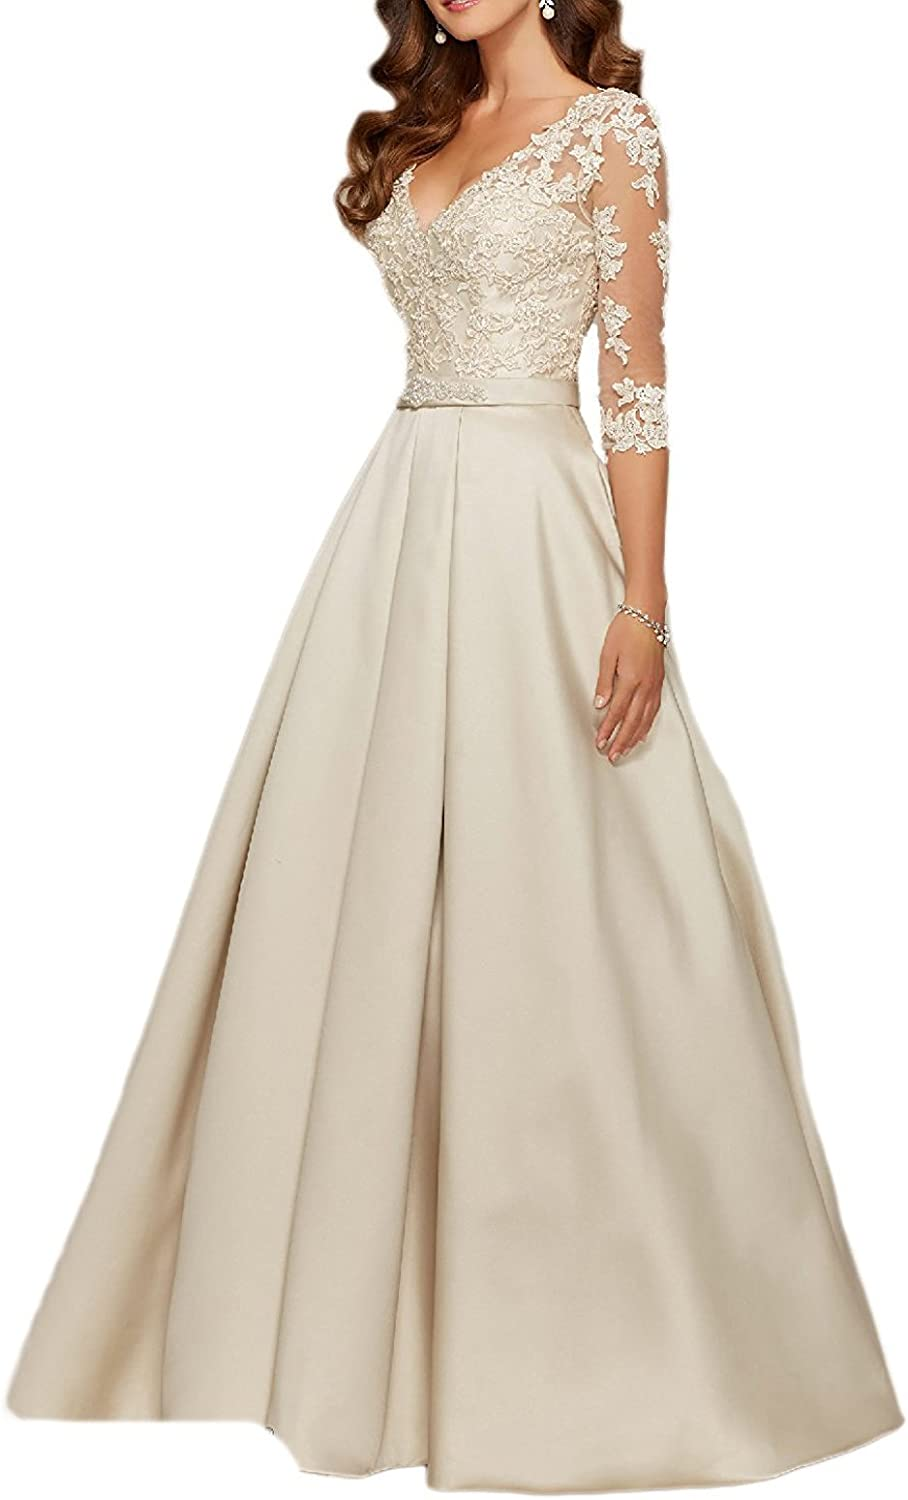 Beilite 3 4 Sleeves A Line Evening Gowns Lace Appliques Party Dresses Formal